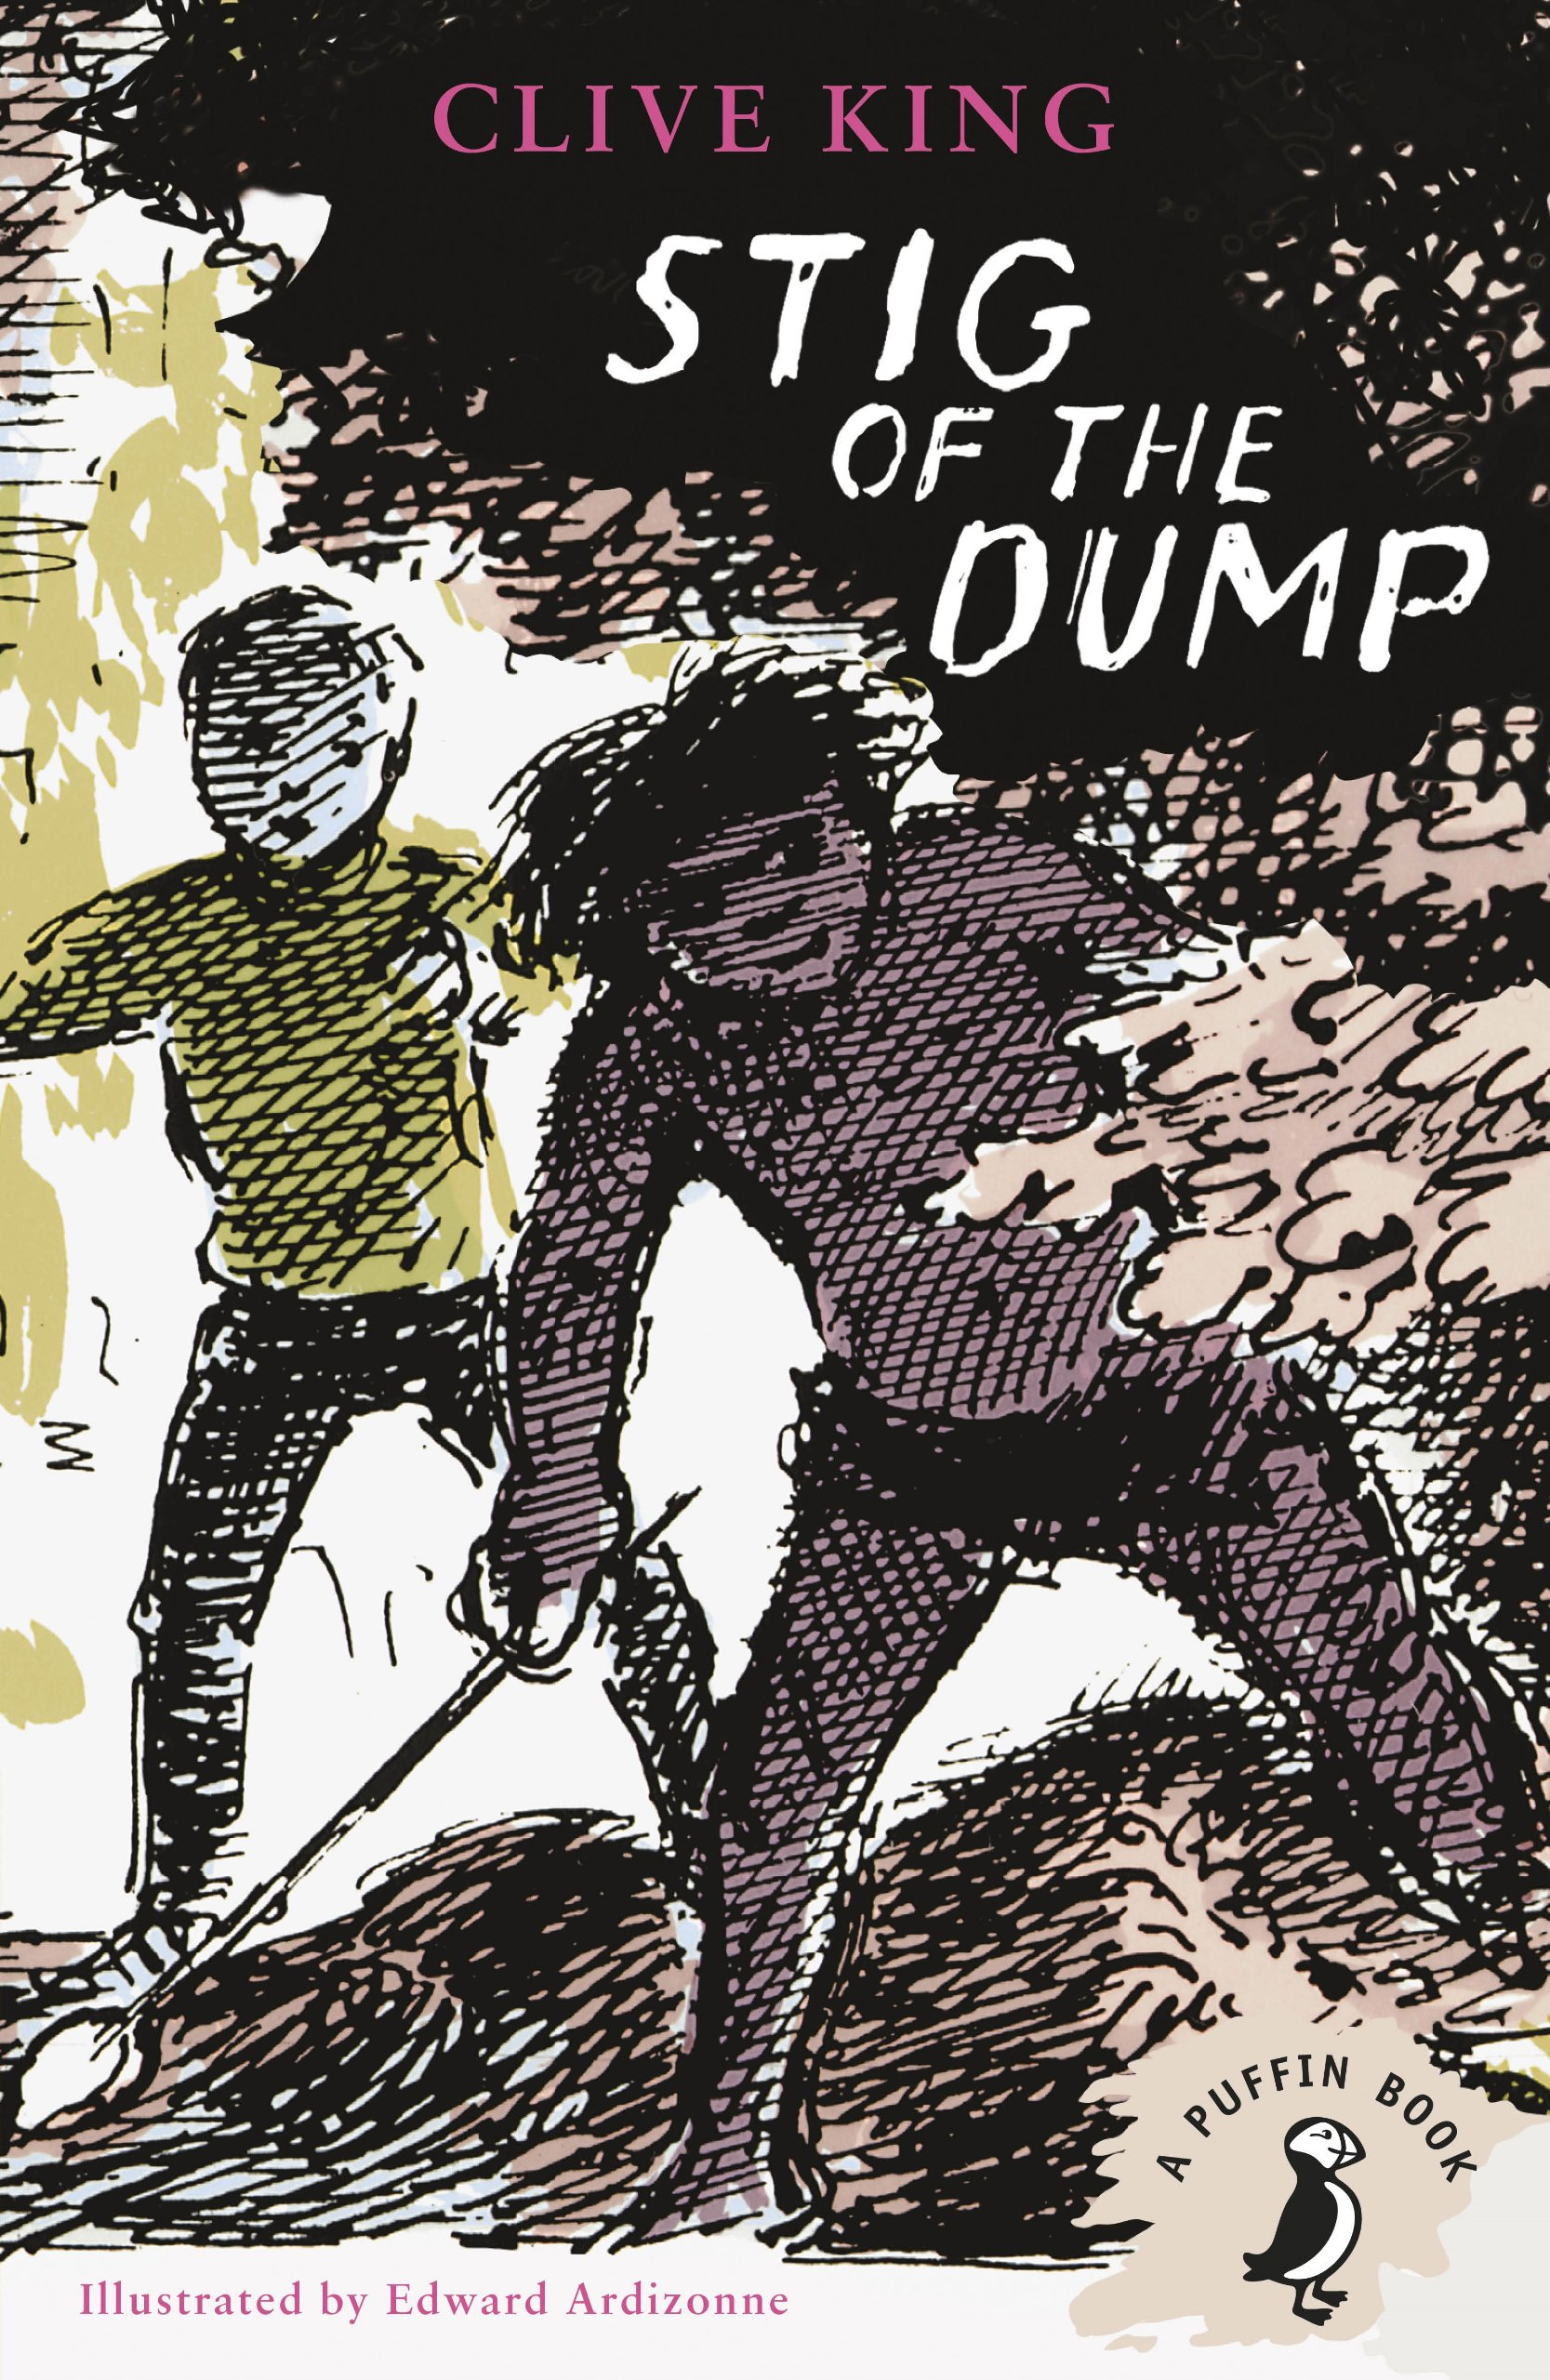 Stig of the Dump (A Puffin Book) : King, Clive, Ardizzone, Edward:  Amazon.co.uk: Books